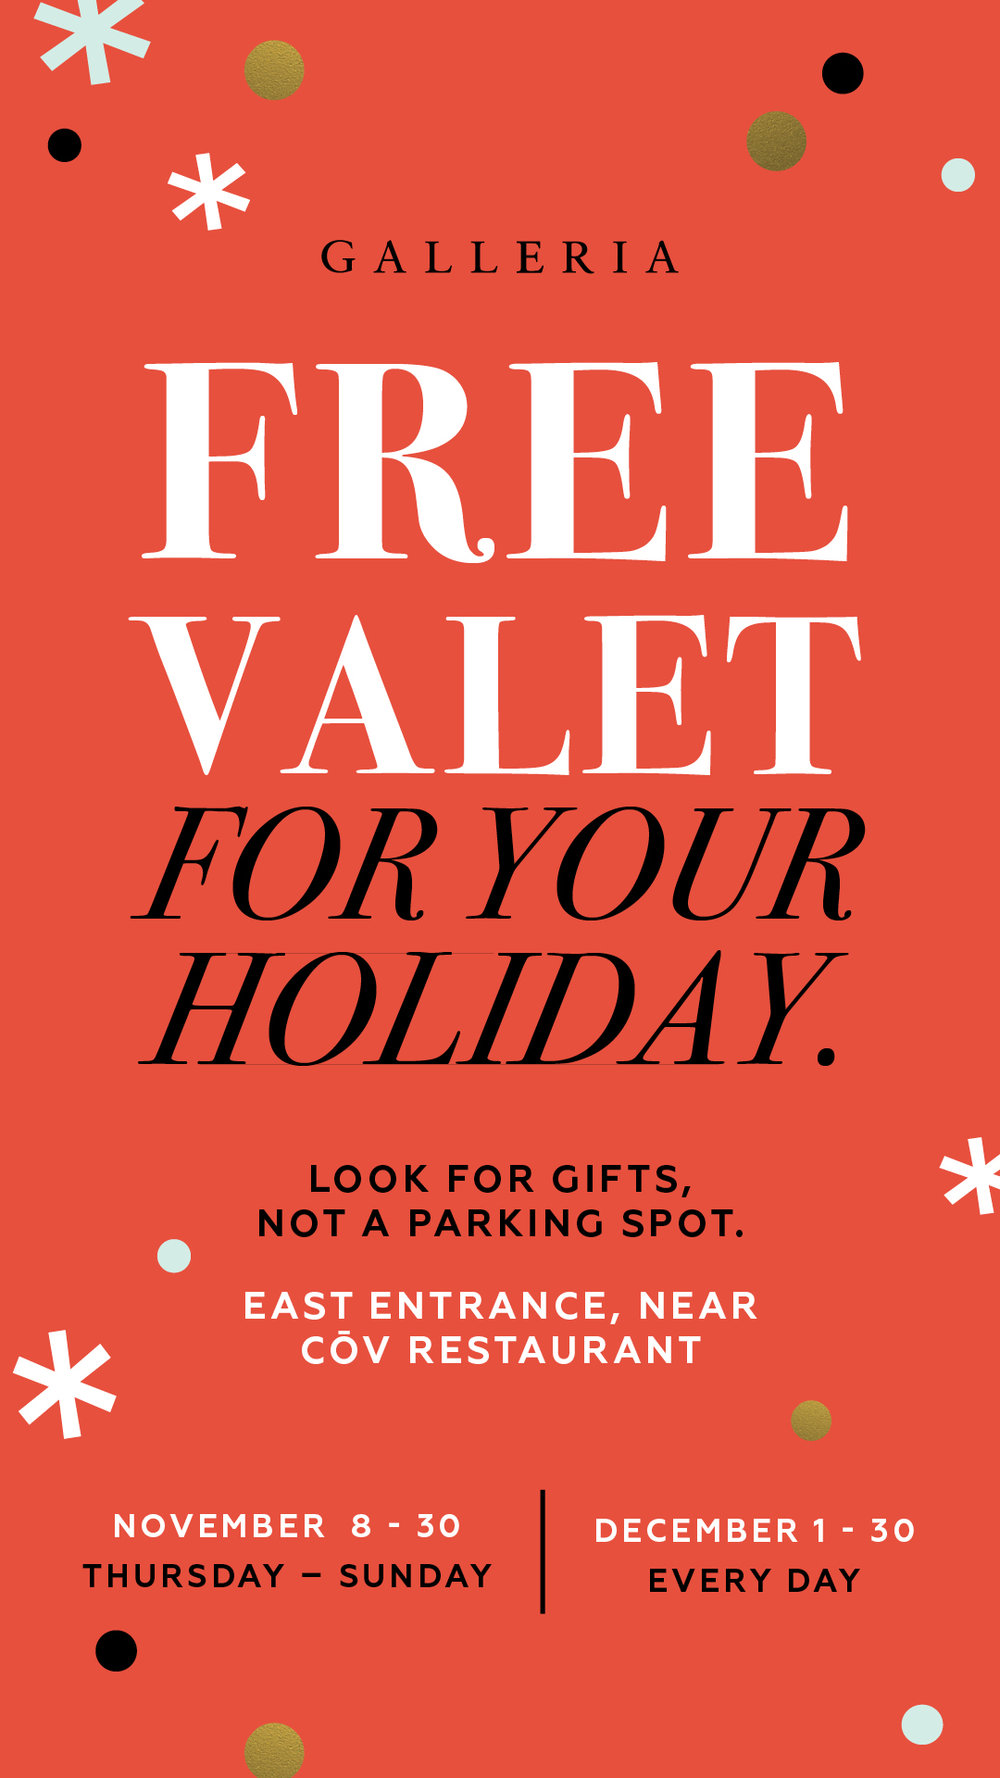 40449_Galleria_Holiday_Digital_Directories_VALET_15x26.6667_KL (002).JPG